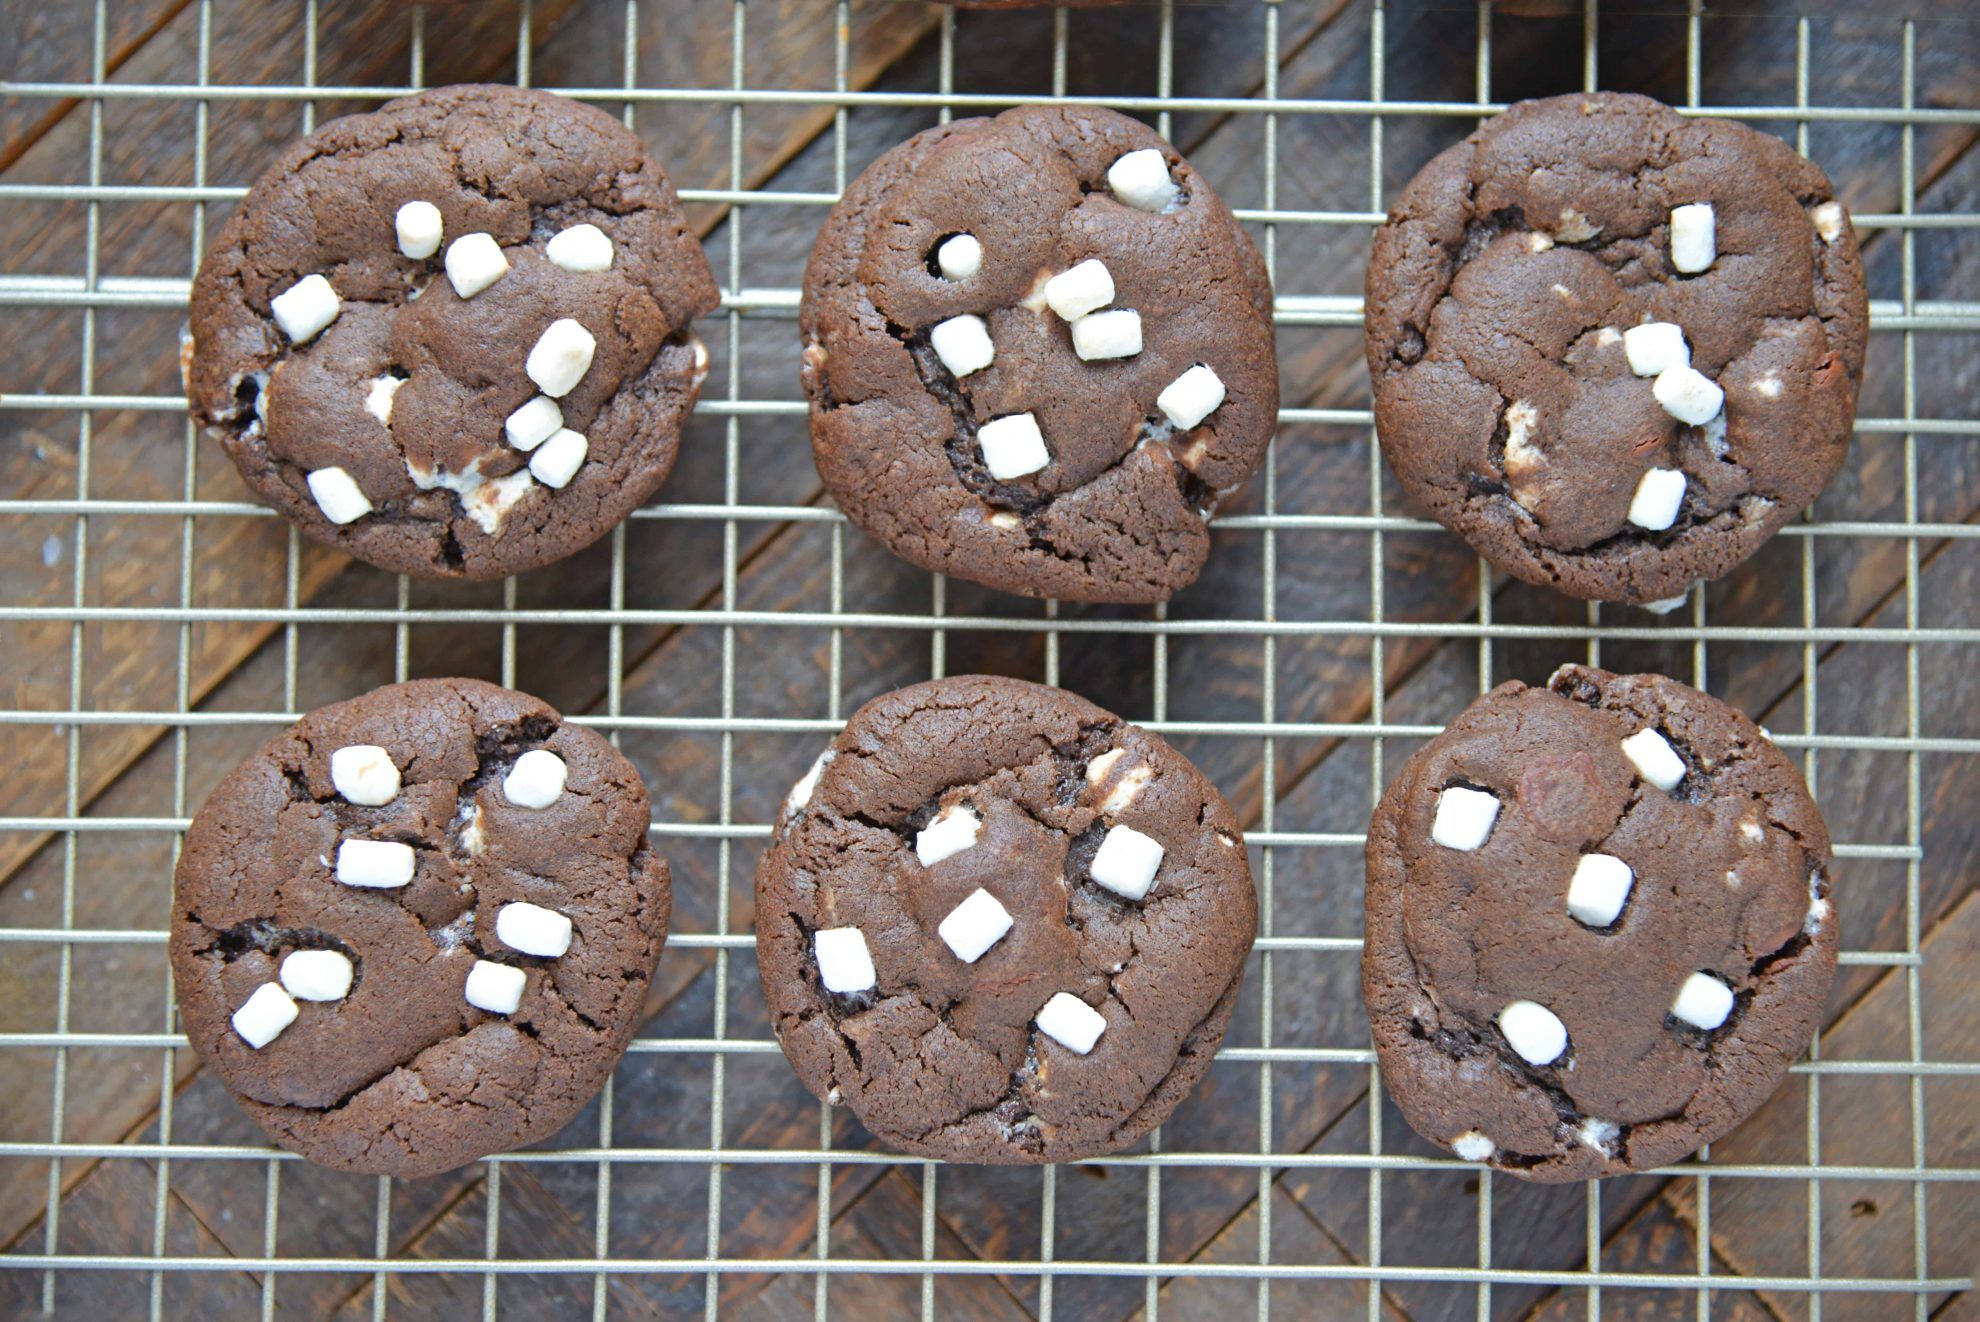 Hot Chocolate Cookies are must-make Christmas cookies! A favorite chocolate sugar cookie recipe with marshmallows, you'll never be able to eat just one! #hotchocolatecookies #chocolatesugarcookiesrecipe #christmascookies www.savoryexperiments.com